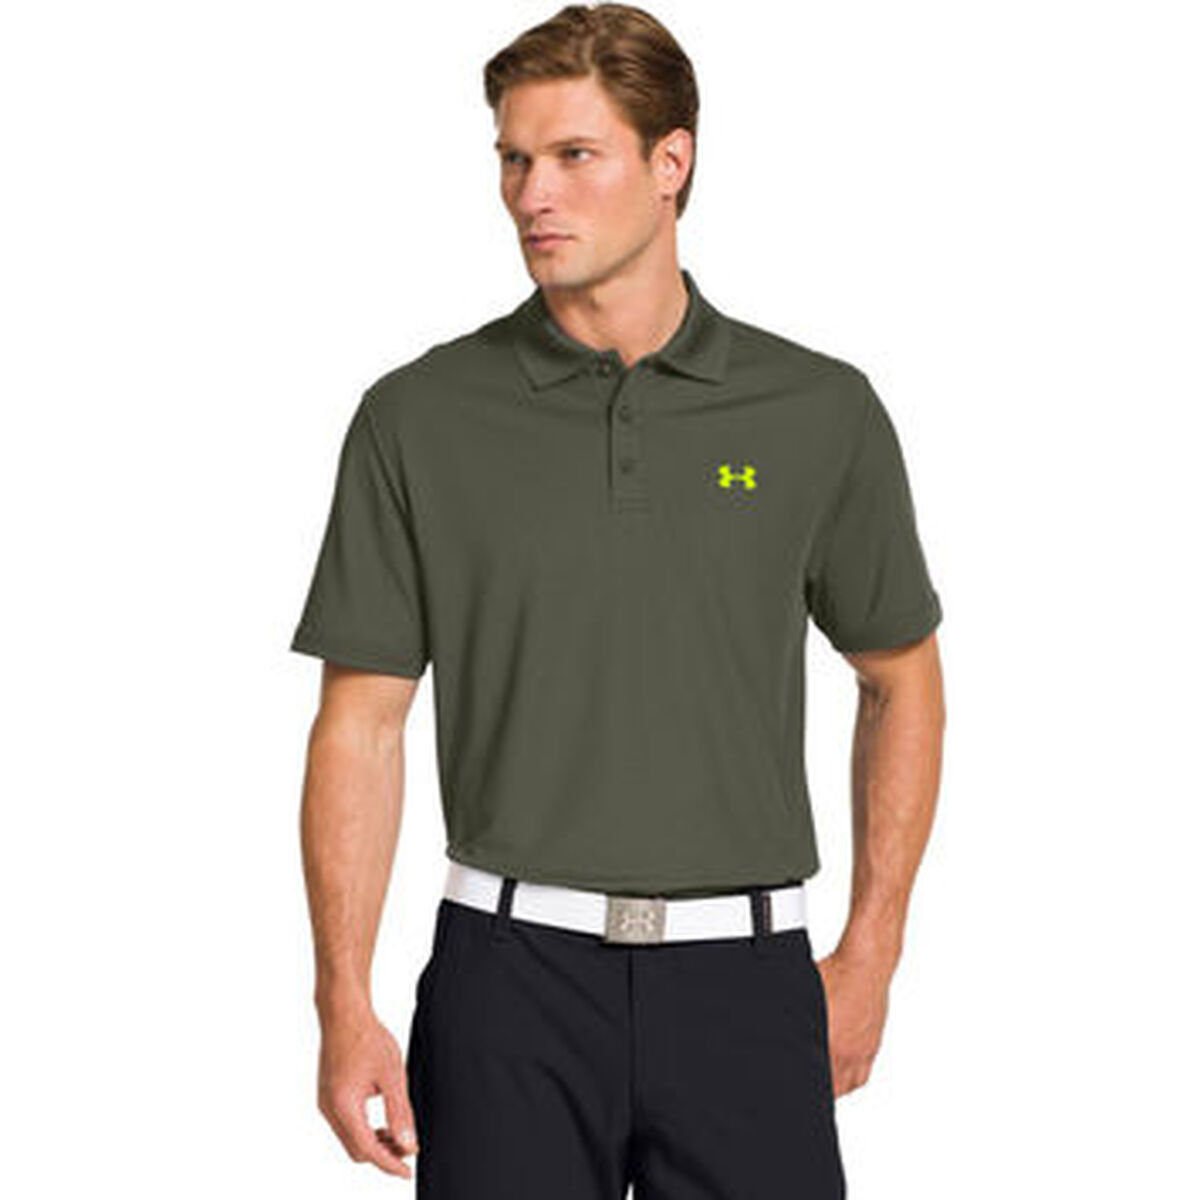 a1409576 Under Armour Performance Polo   PGA TOUR Superstore